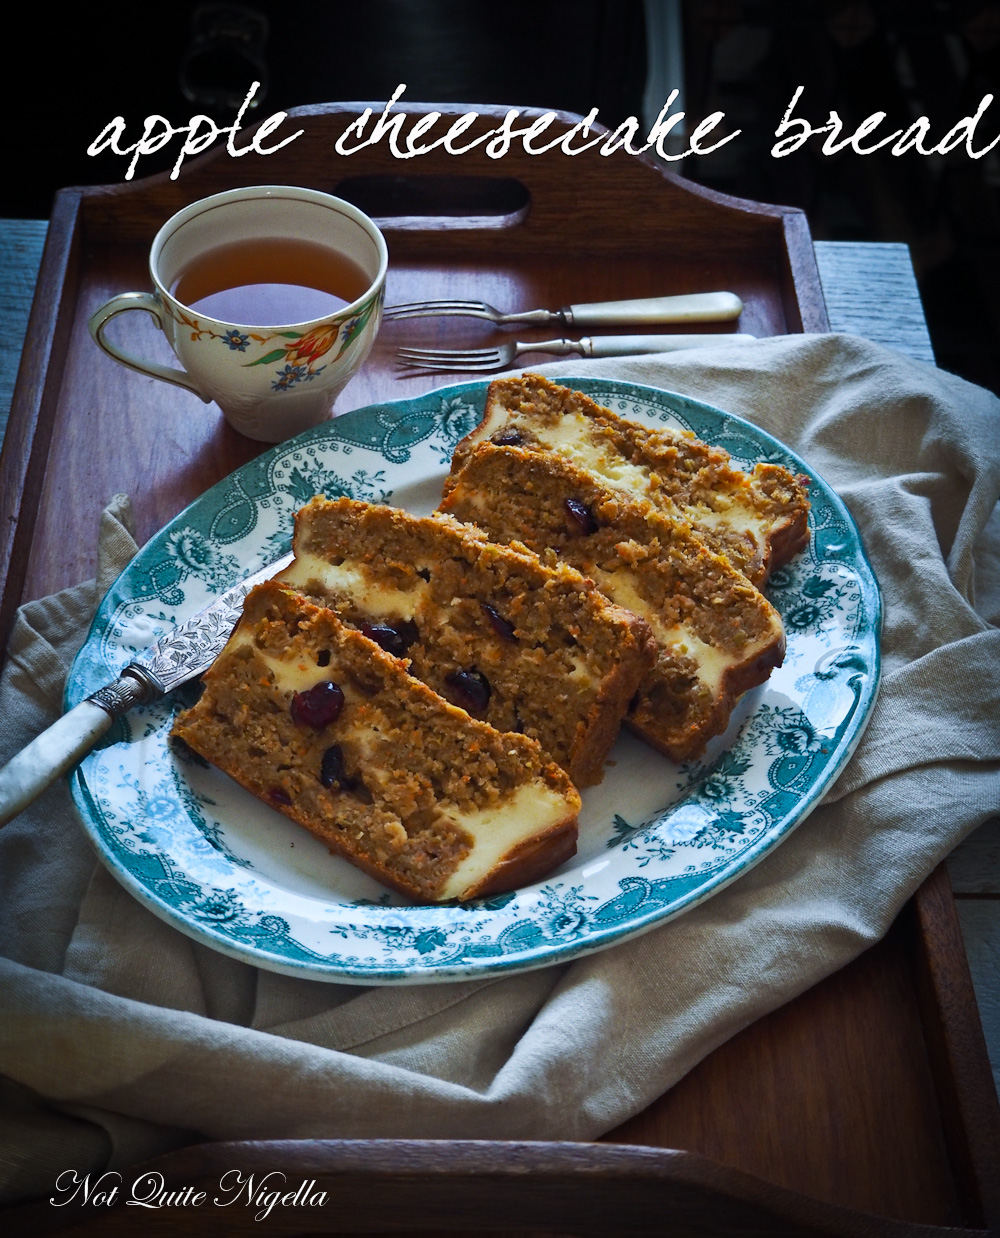 Apple Cheesecake Bread